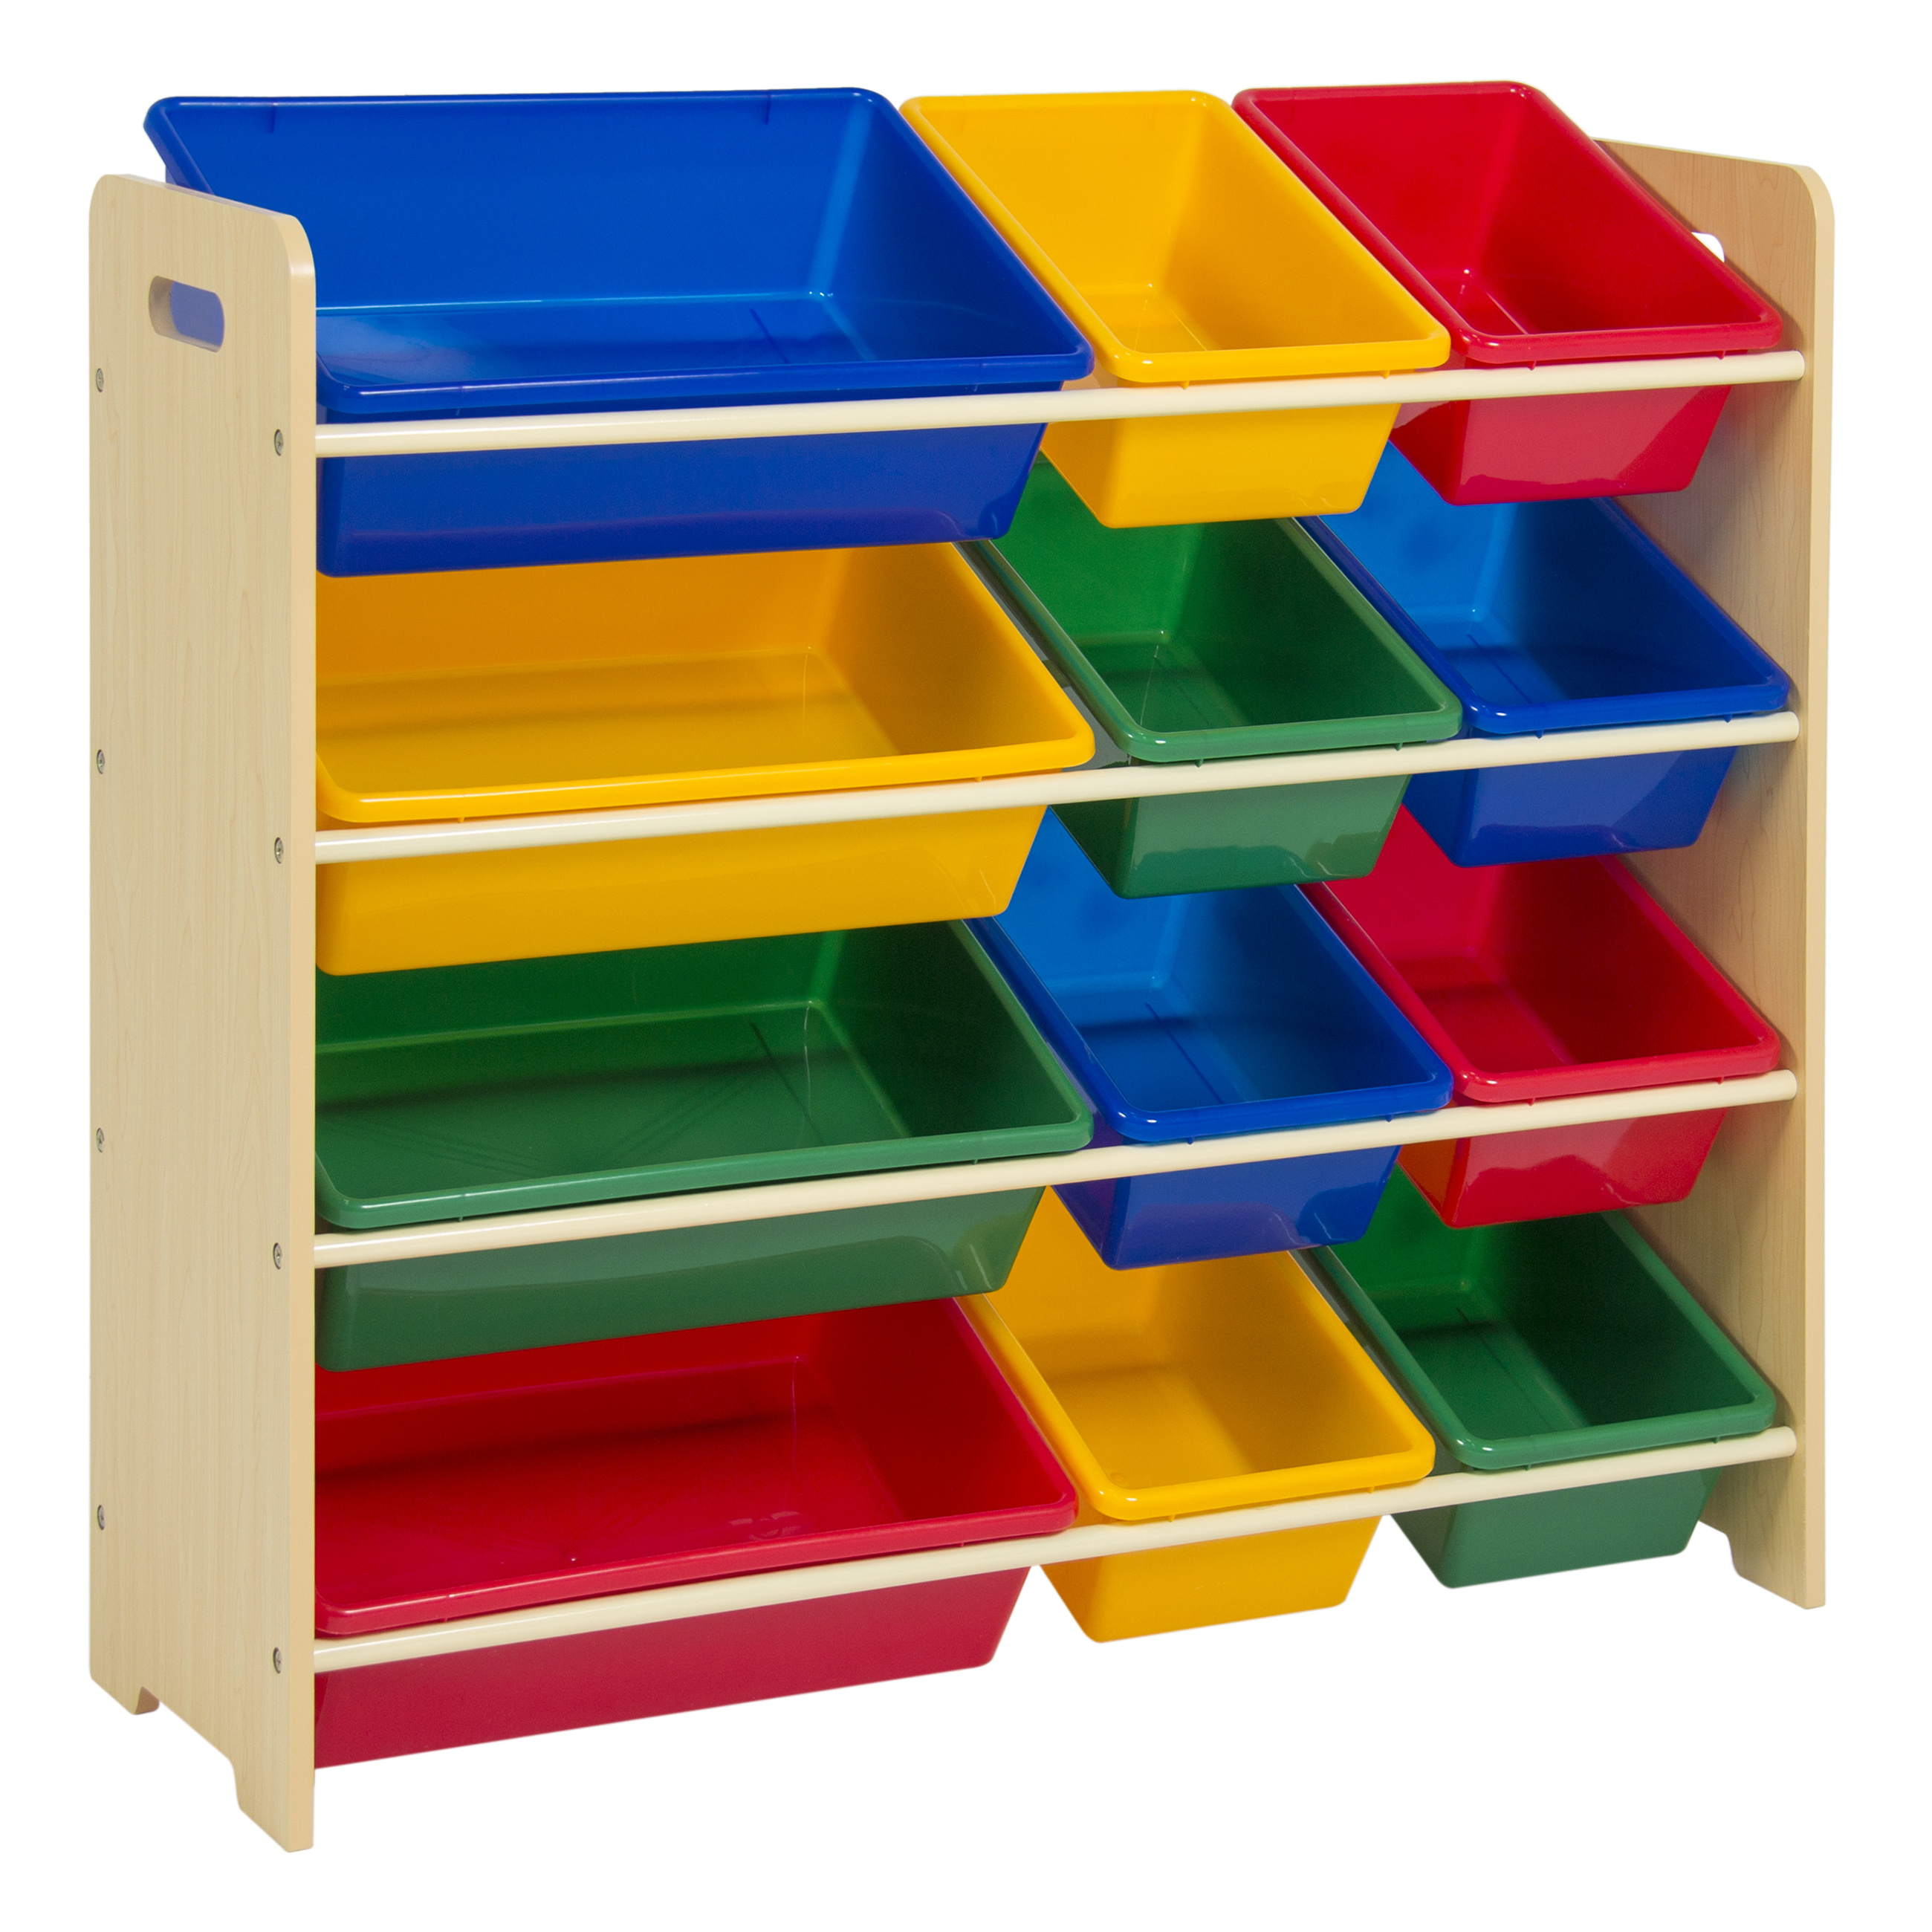 Merveilleux Best Choice Products 4 Tier Kids Playroom Wood Toy Storage Organizer Shelves  W/ 12